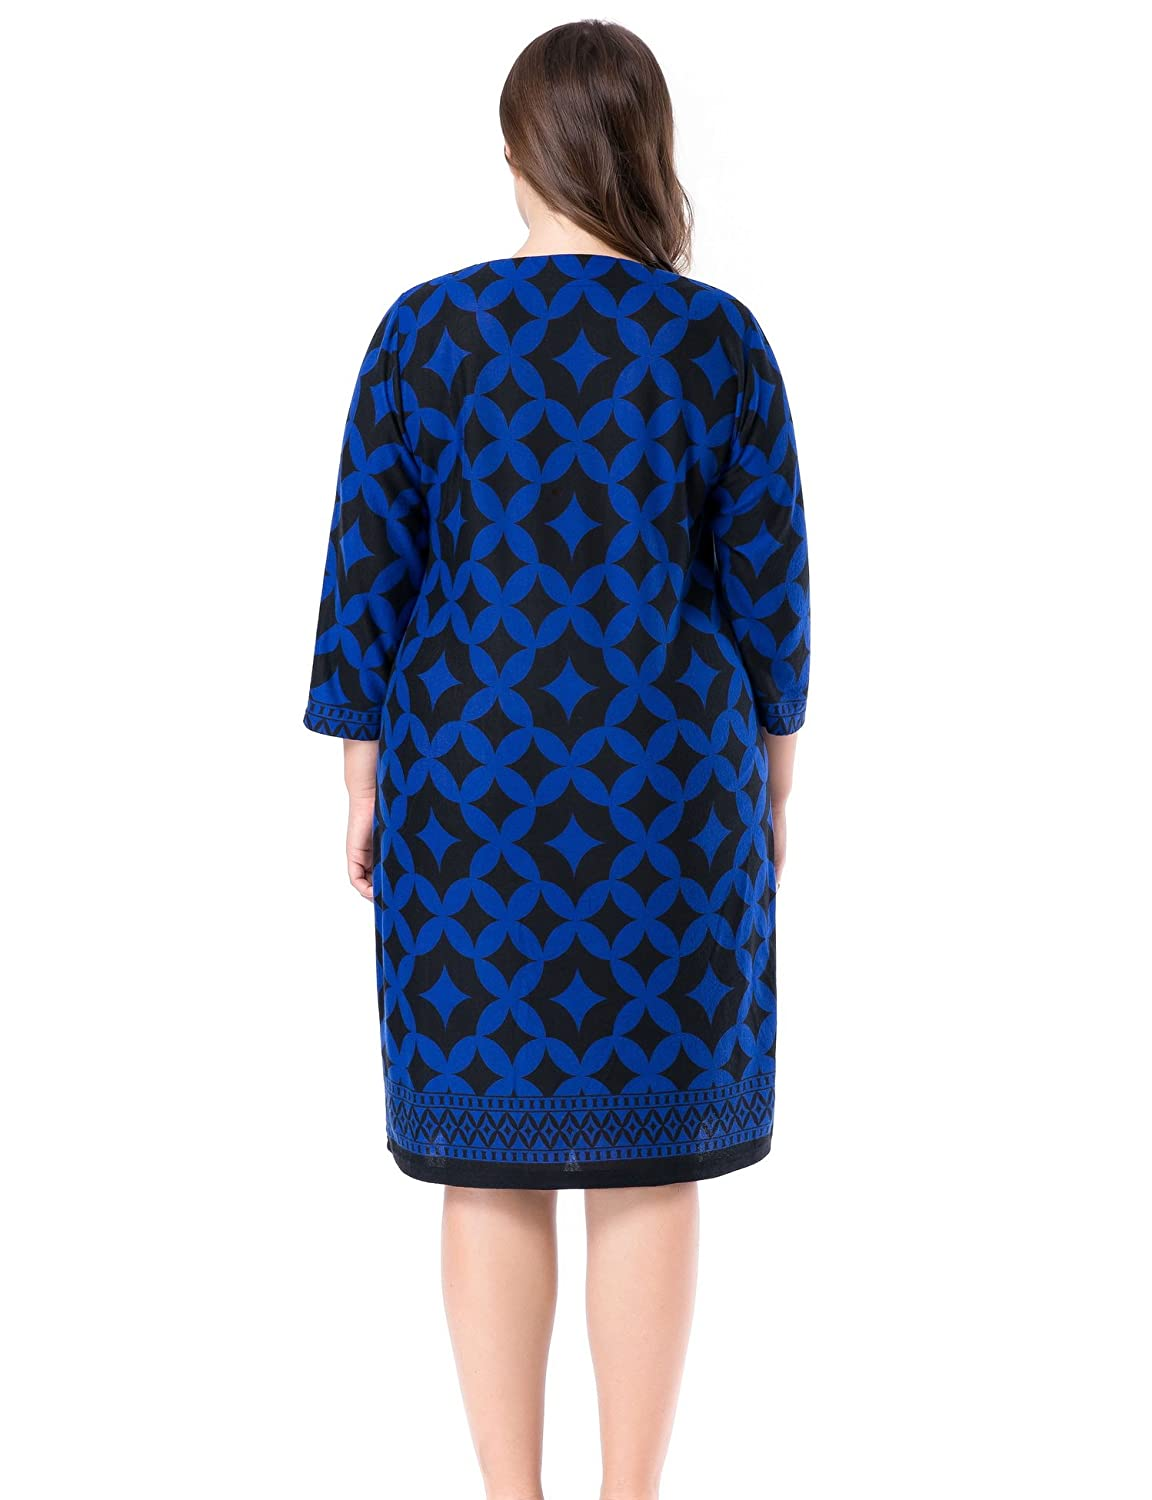 3f832c9dcae Chicwe Women s Cashmere Touch Printed Plus Size Shift Dress US12-28   Amazon.ca  Clothing   Accessories